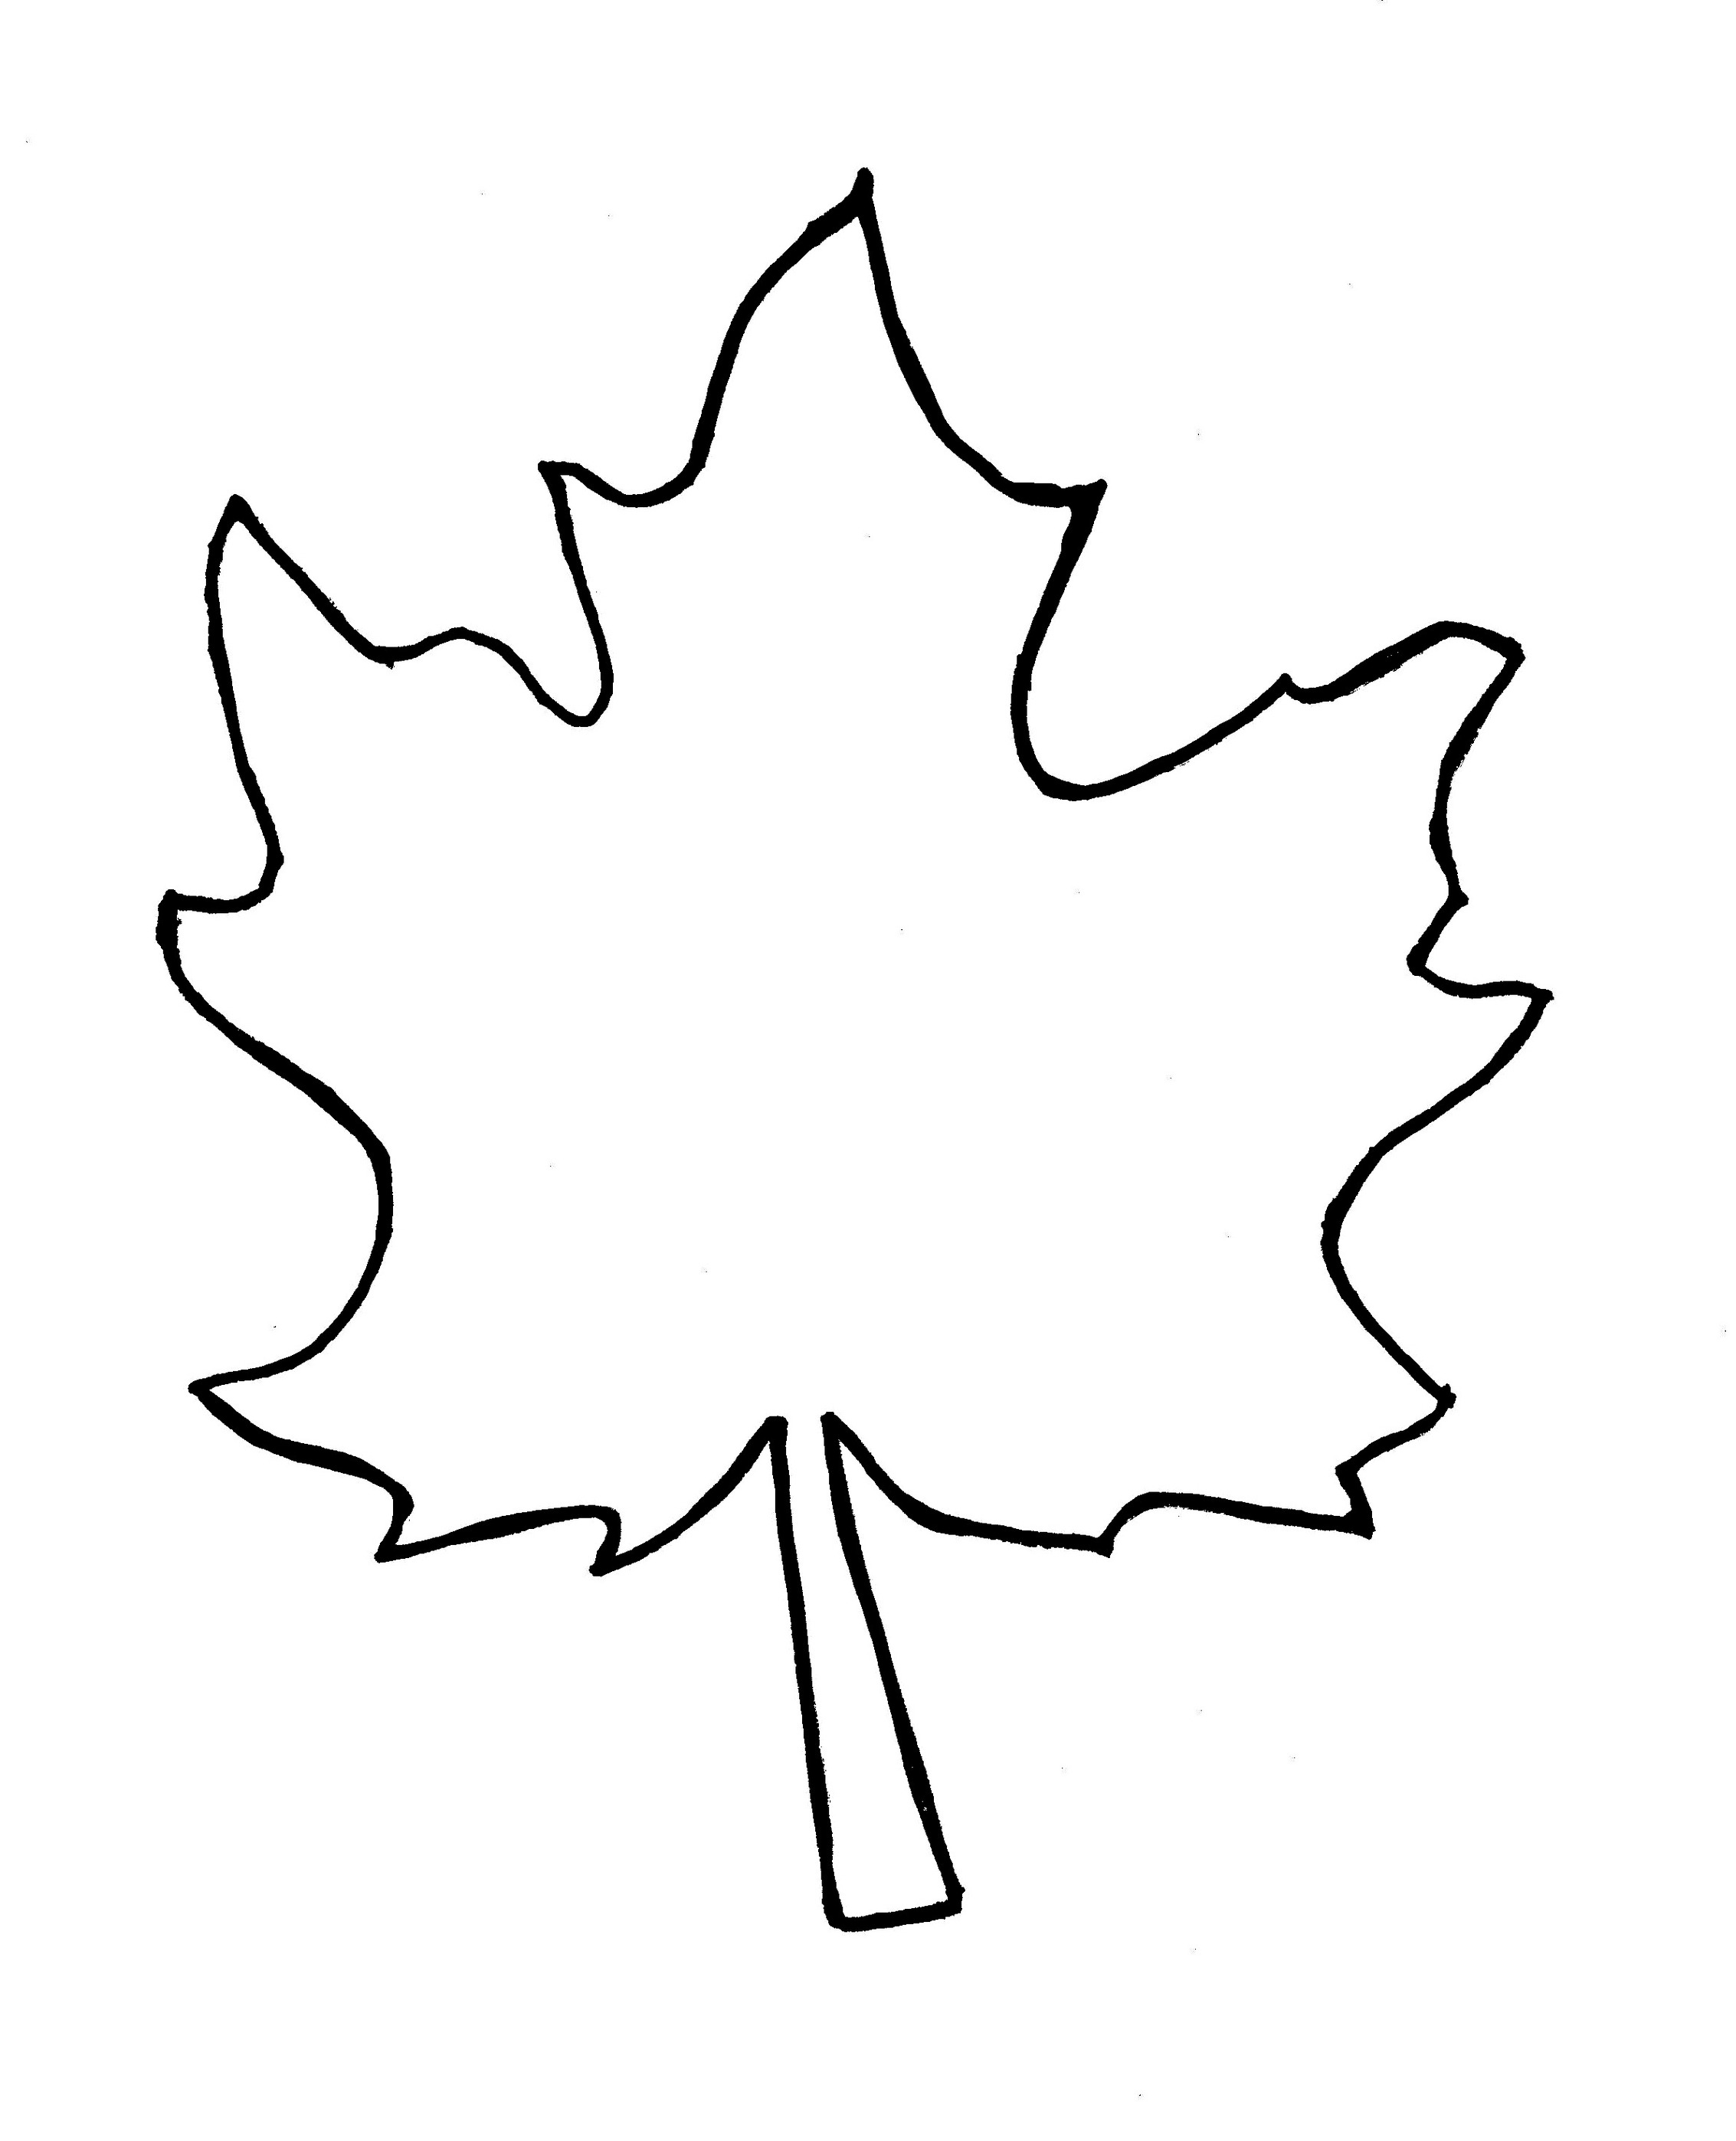 Leaf clipart outline different sizes clip royalty free download Leaf clipart outline different sizes - ClipartFest clip royalty free download